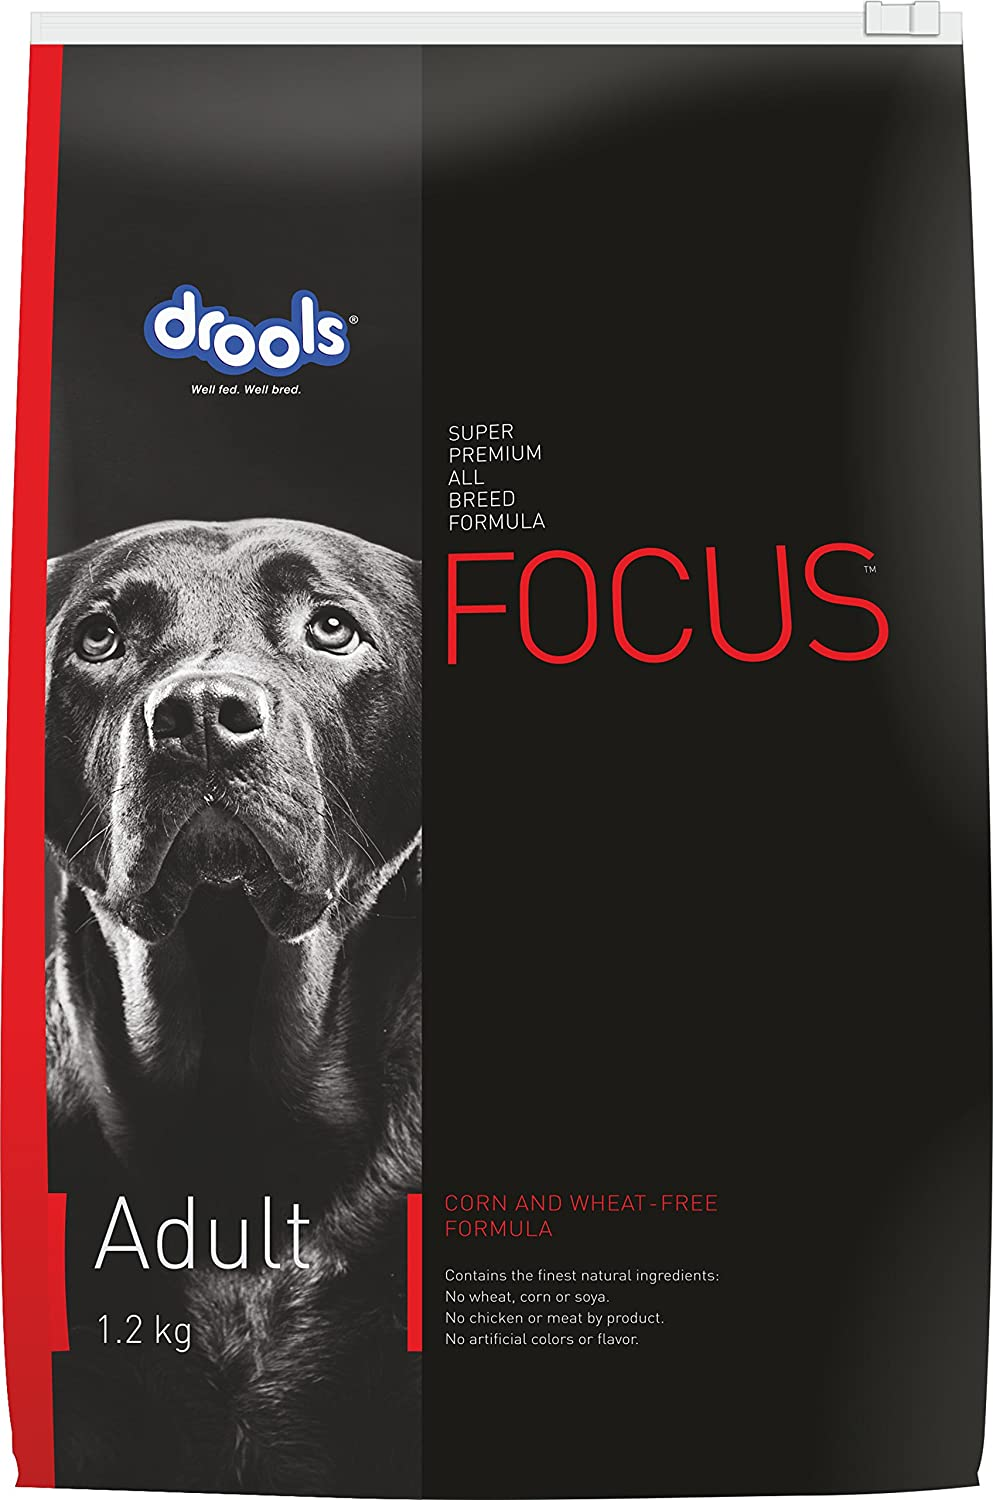 Royal Canin Dog Food Suppliers